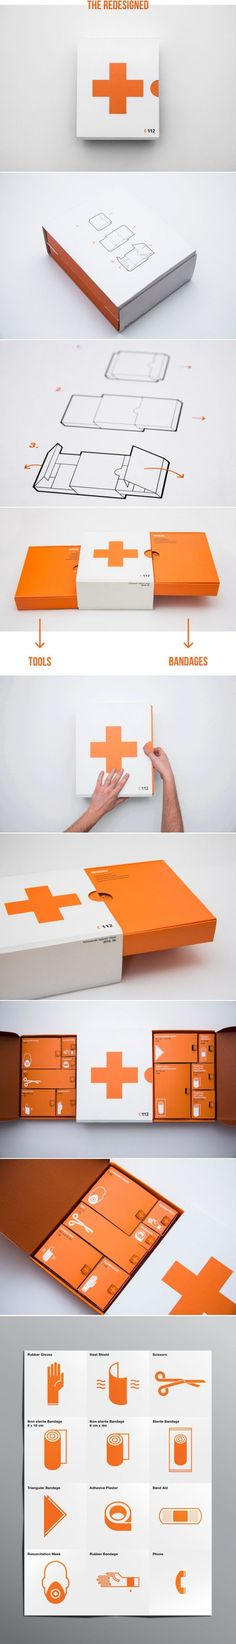 Concept: First Aid Kit - Compartments, Pull out drawers, outer sleeve